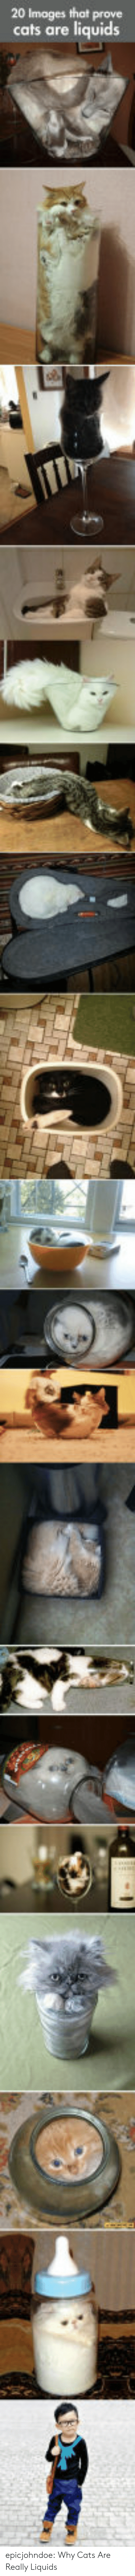 Cats, Tumblr, and Blog: 20 Images that prove  cats are liquids epicjohndoe:  Why Cats Are Really Liquids